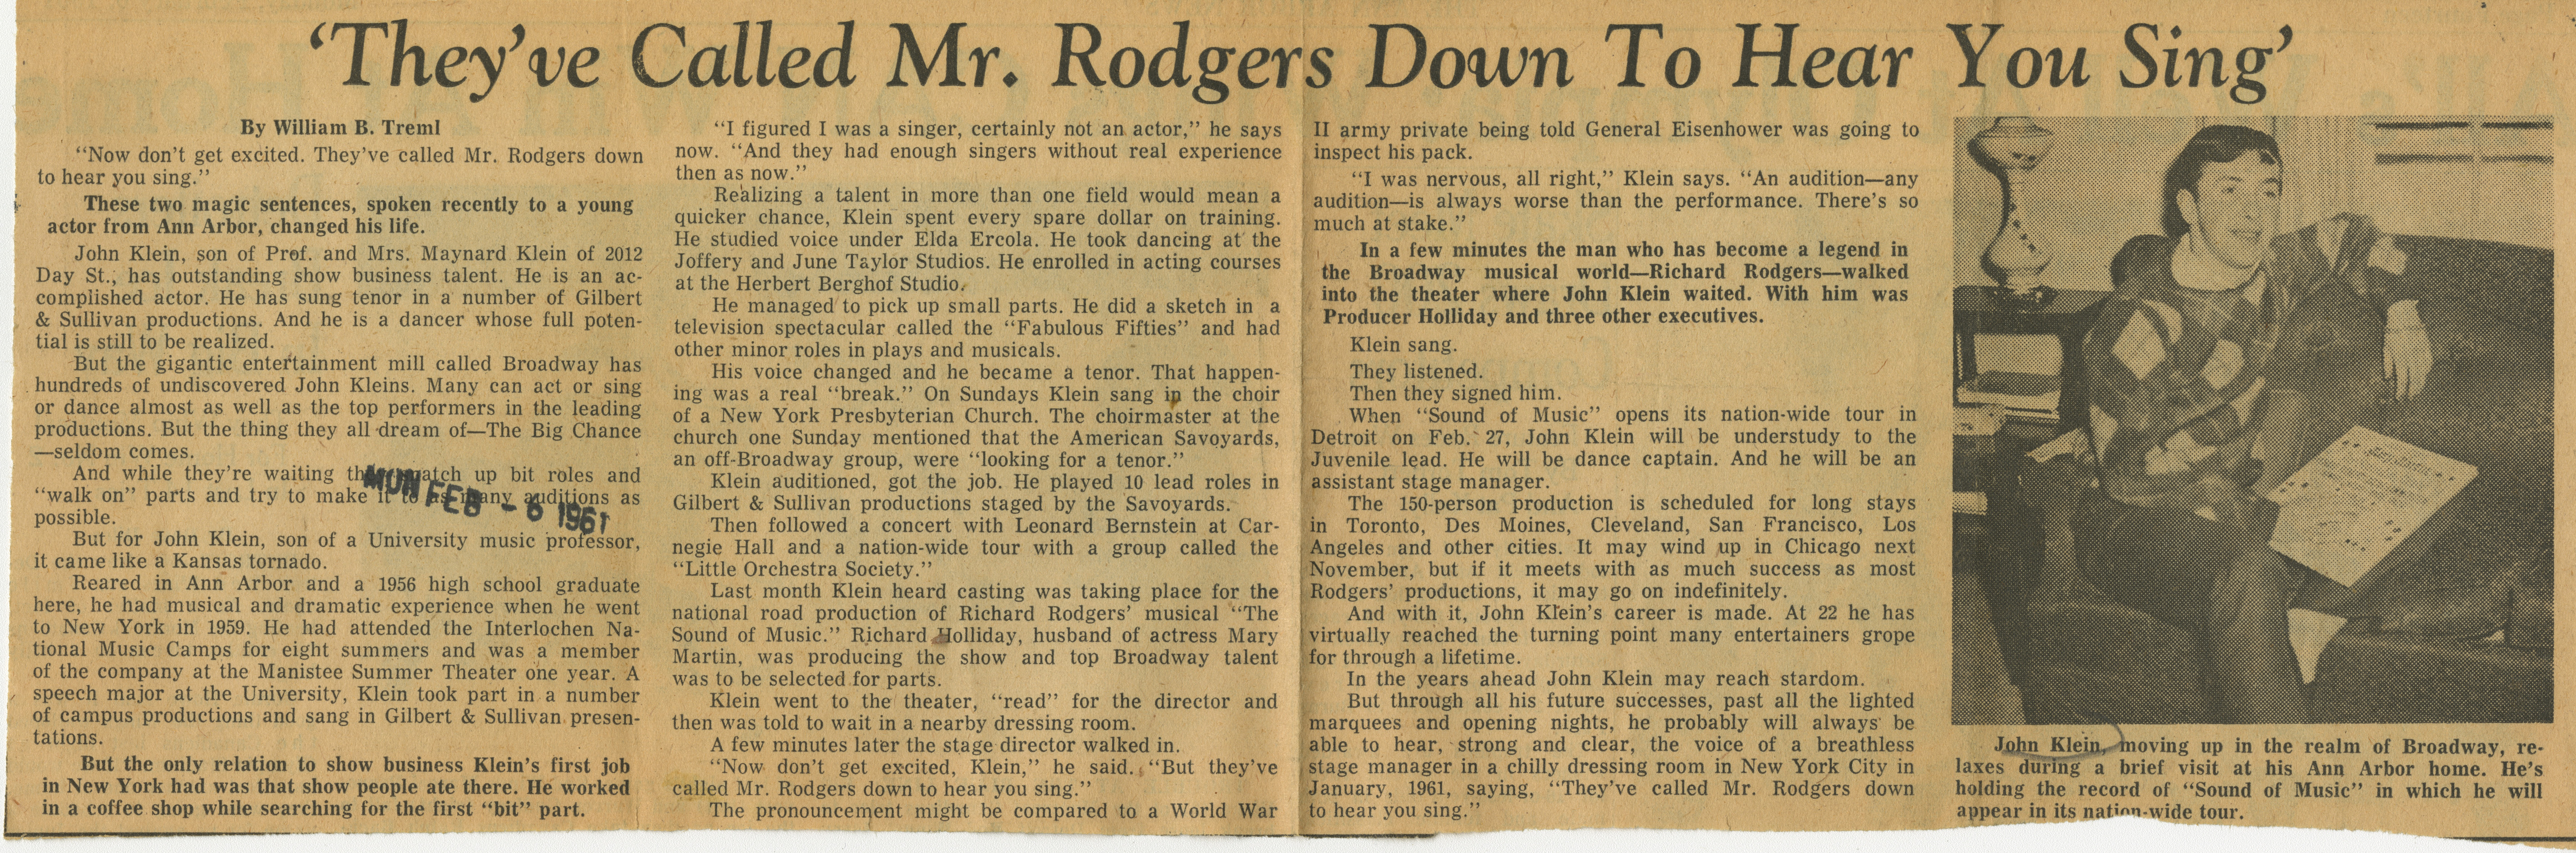 'They've Called Mr. Rodgers Down To Hear You Sing' image